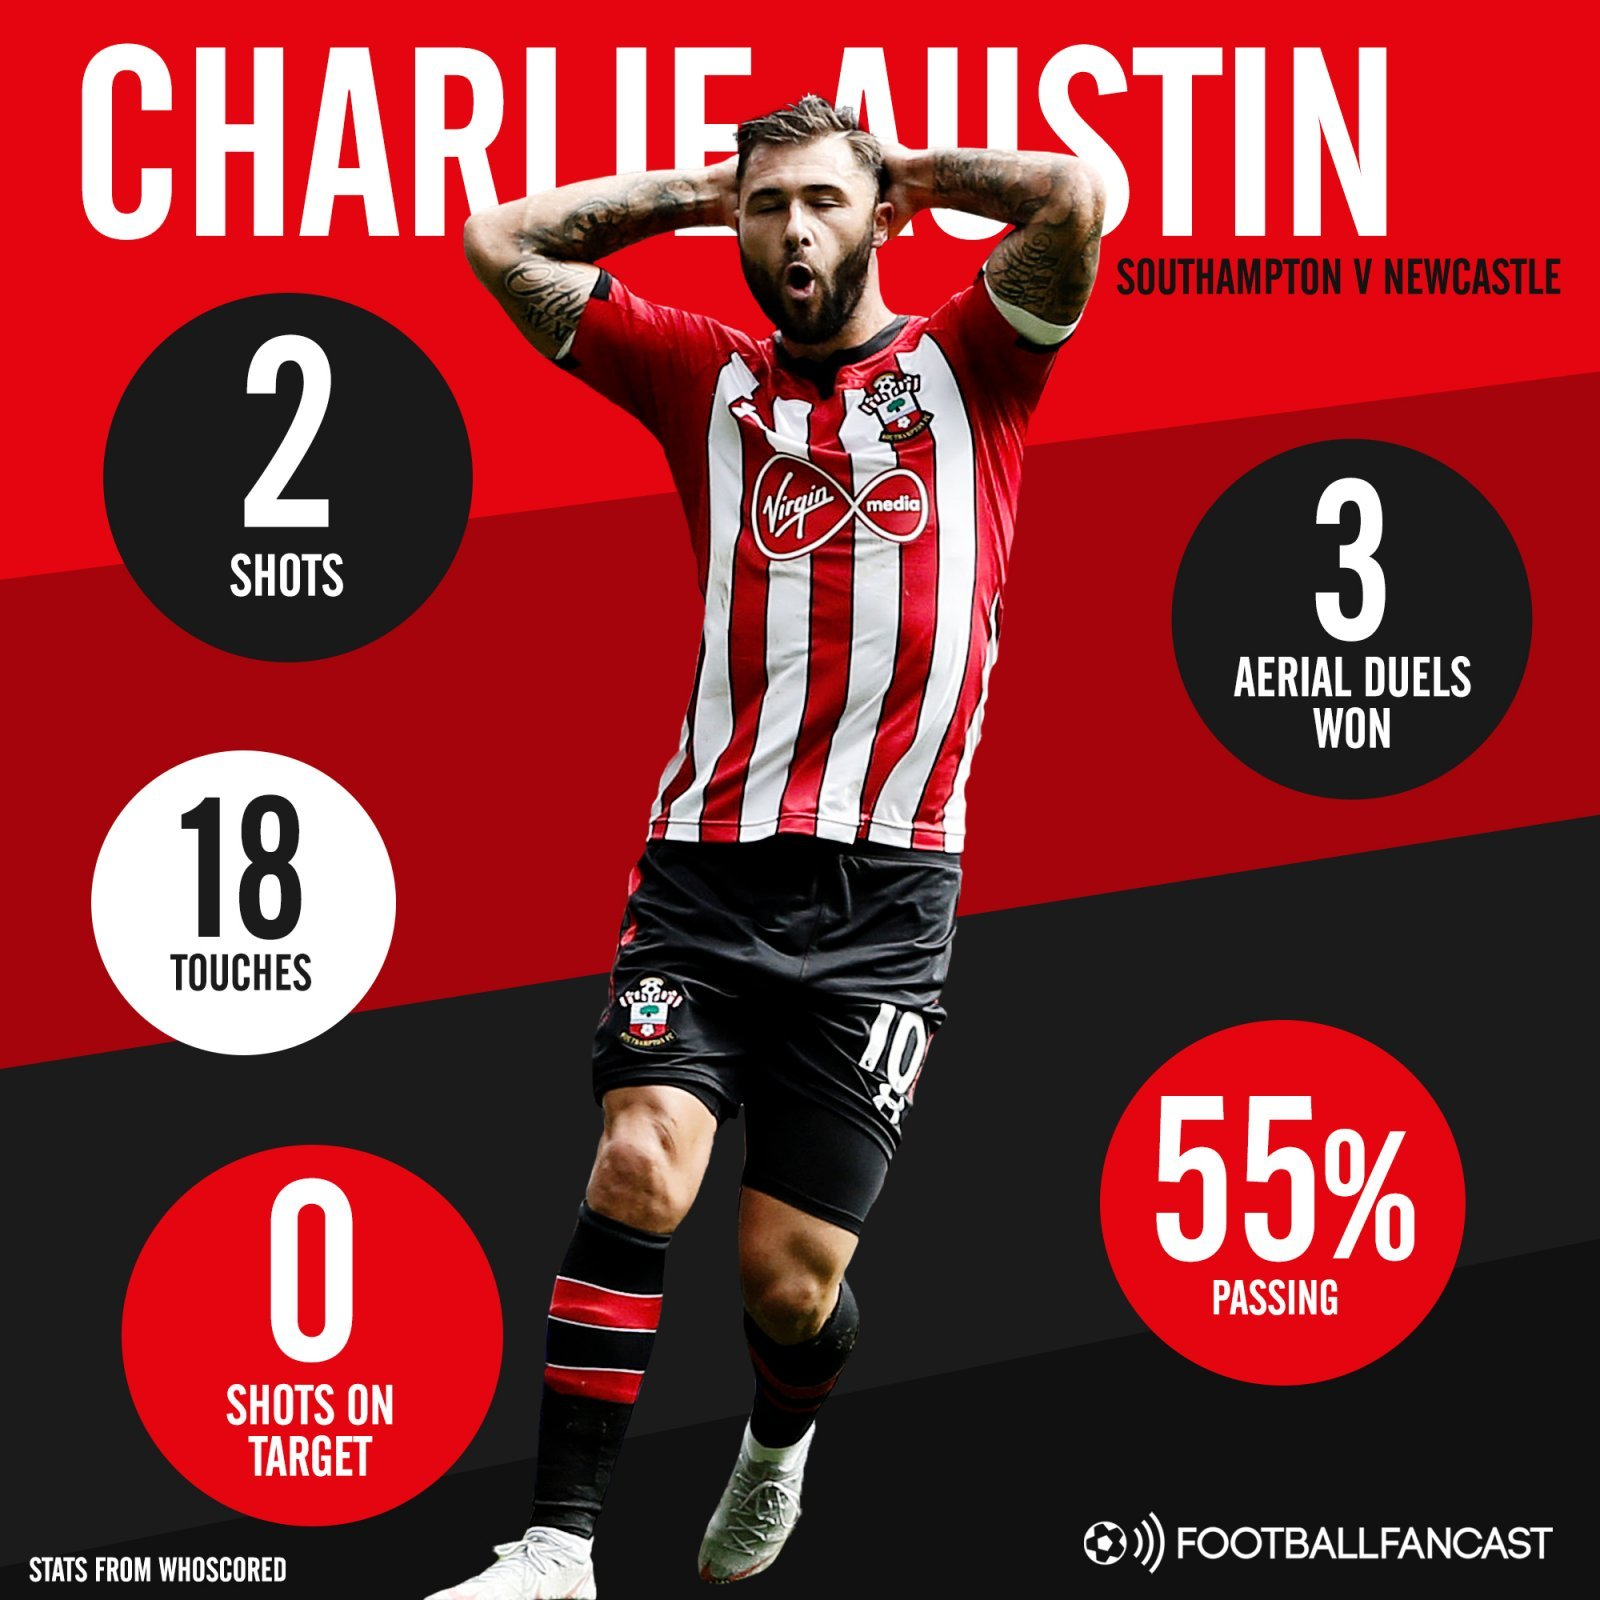 Southampton striker Charlie Austin's stats in 0-0 draw with Newcastle